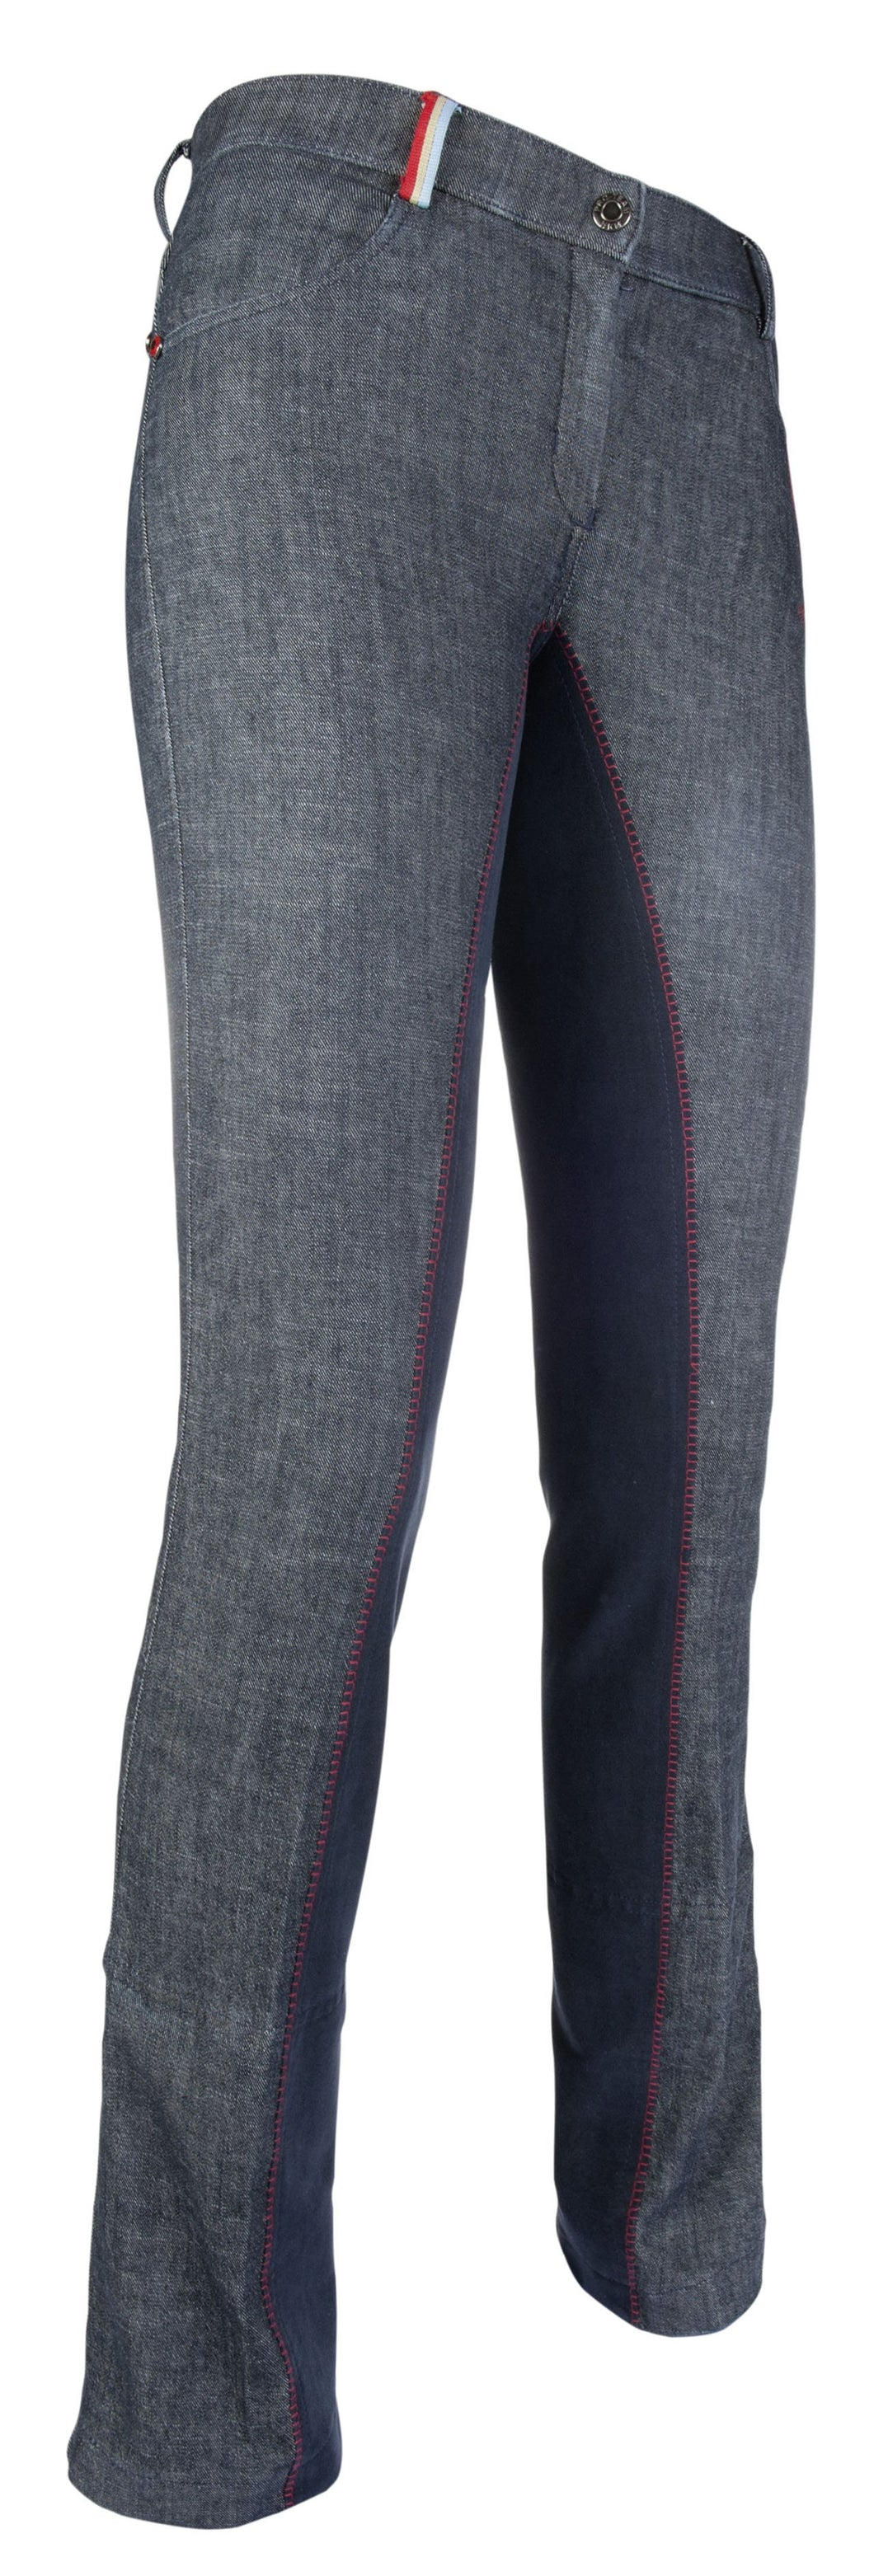 Jodhpur riding breeches-County- Denim 1/1 Alos fu